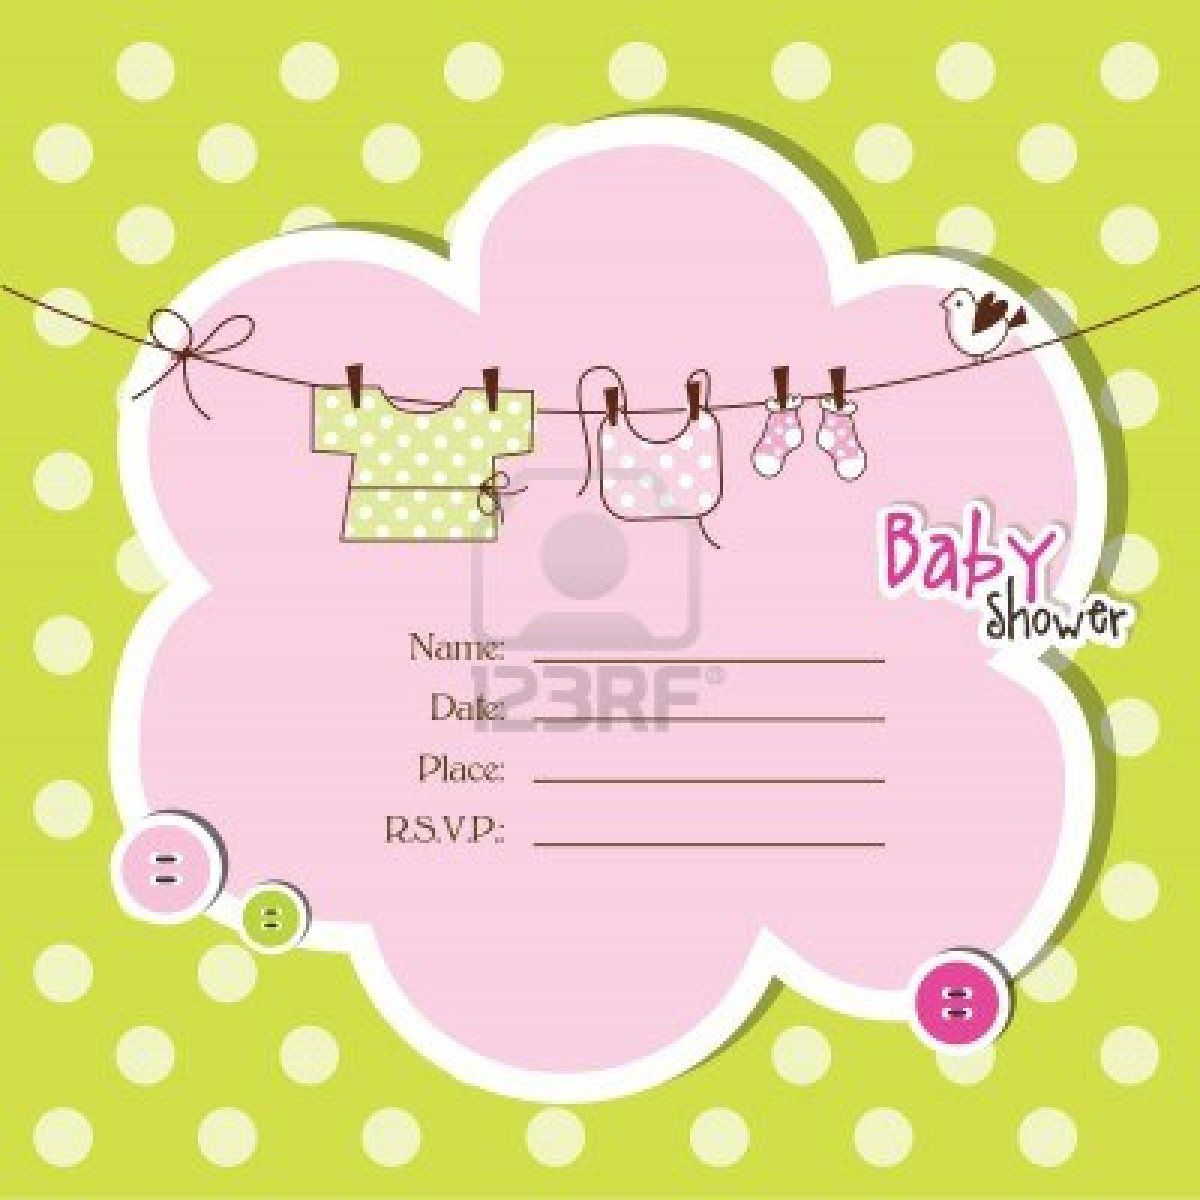 005 Excellent Baby Shower Invitation Template Word Concept  Office Wording Sample Work DownloadFull